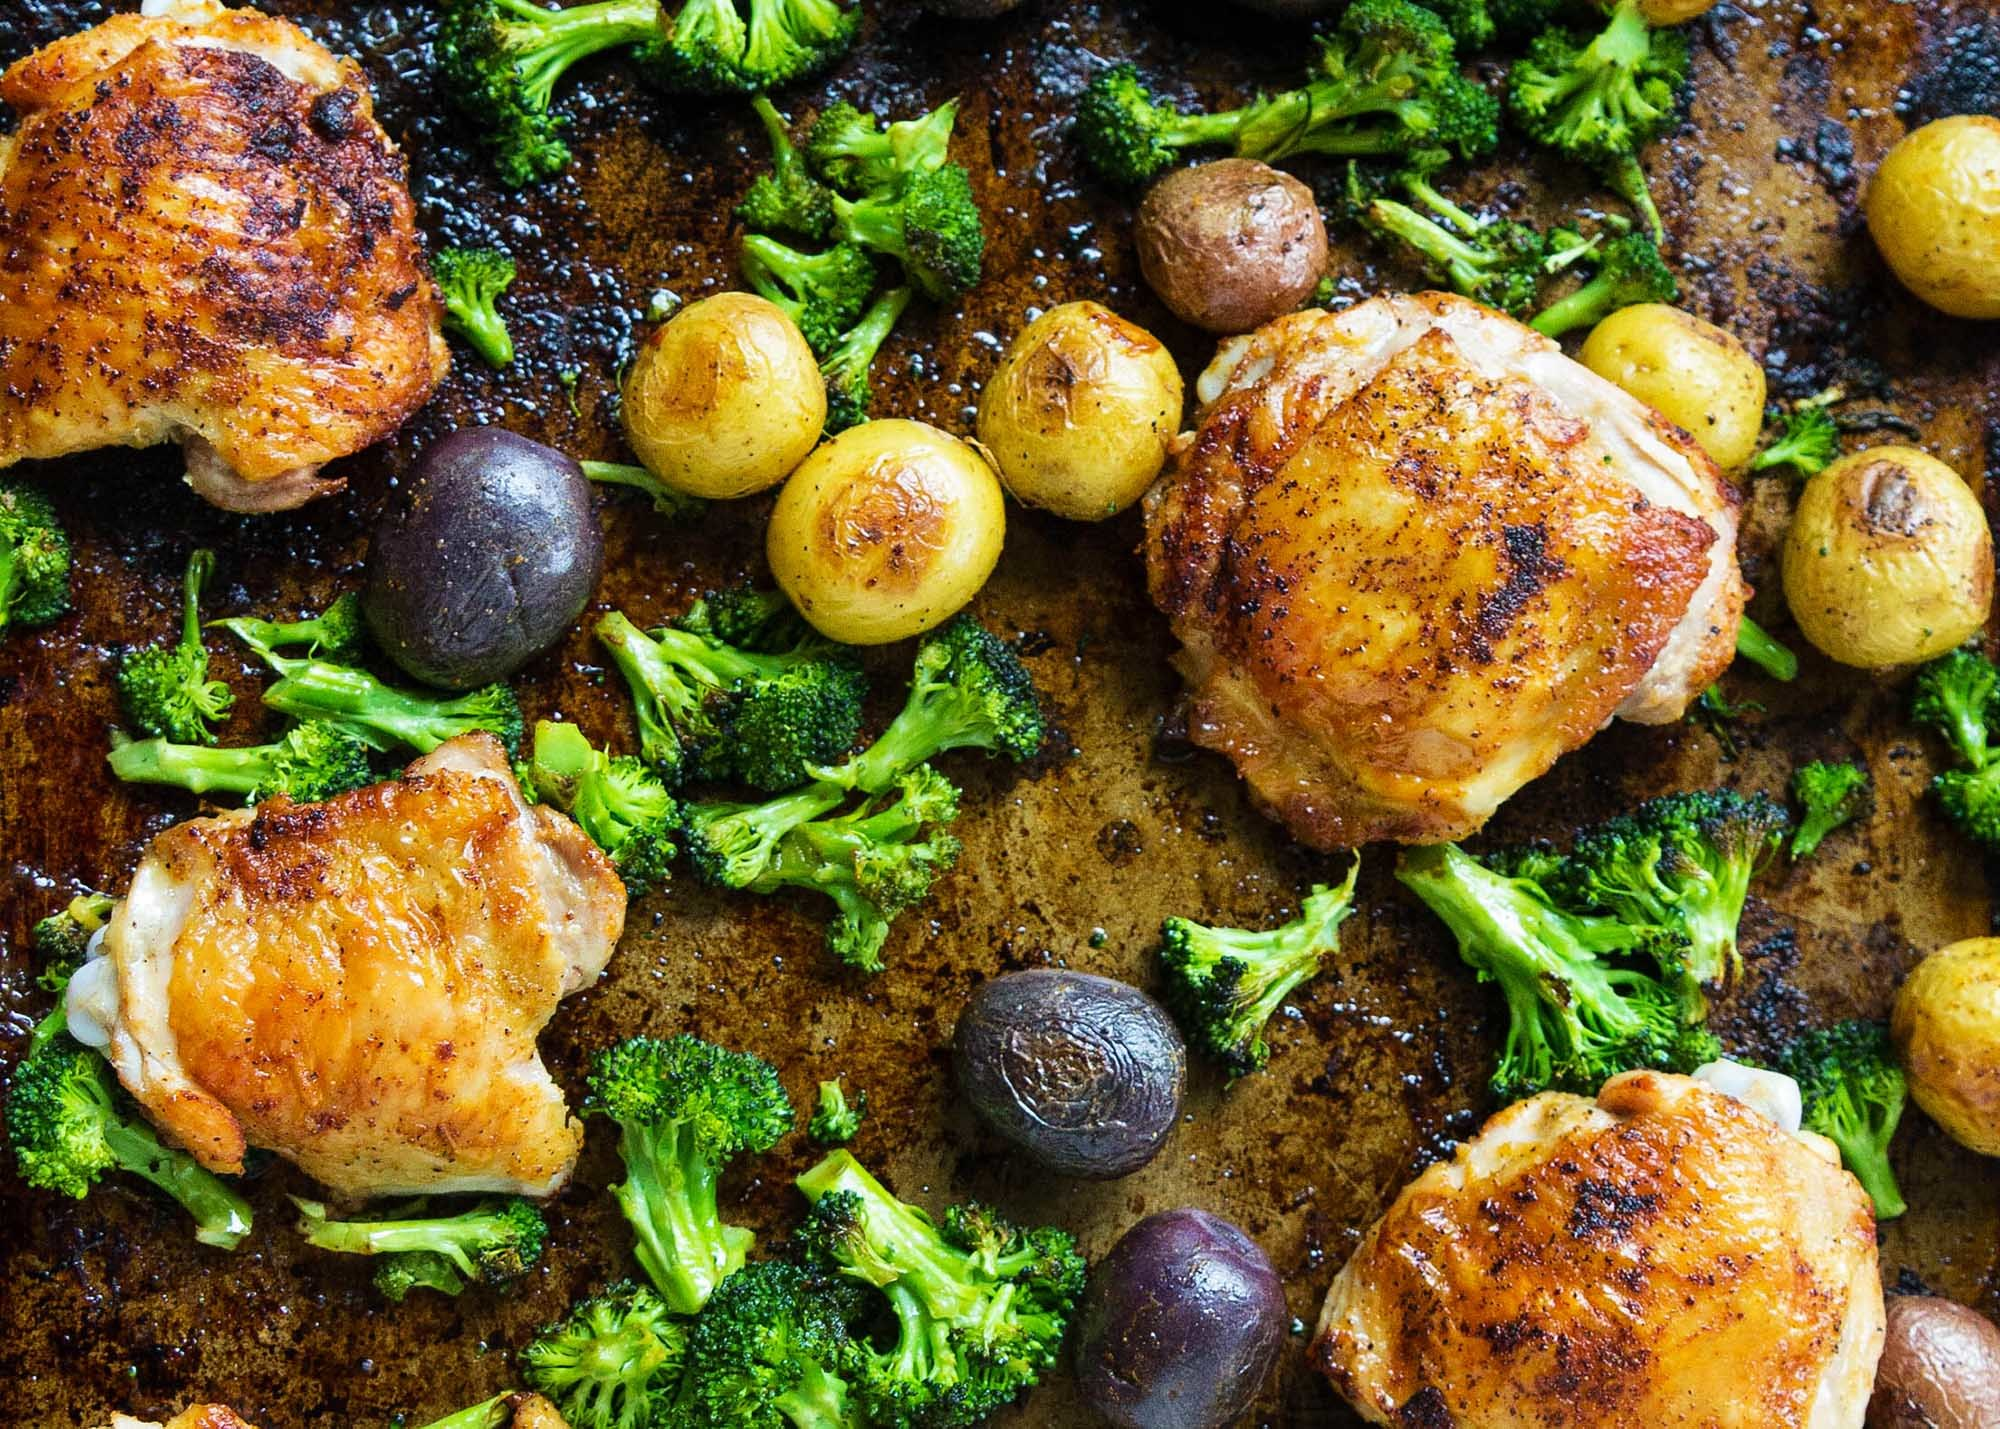 Sheet Pan Chicken with Roasted Broccoli and Potatoes Recipe | SimplyRecipes.com